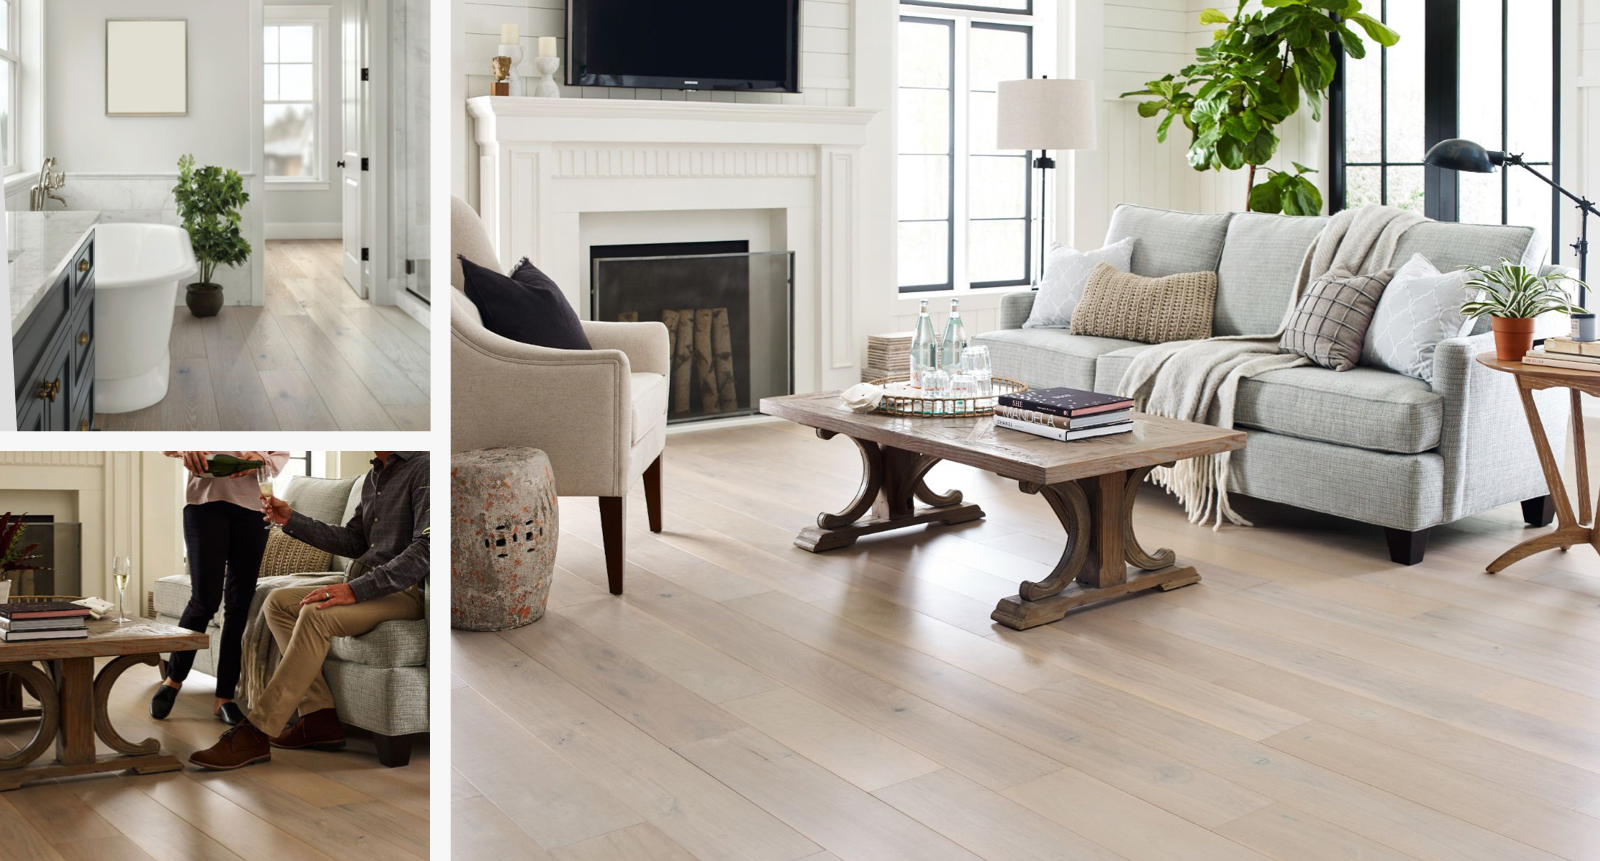 Floorte waterproof hardwood flooring for your home | All Floors Design Centre